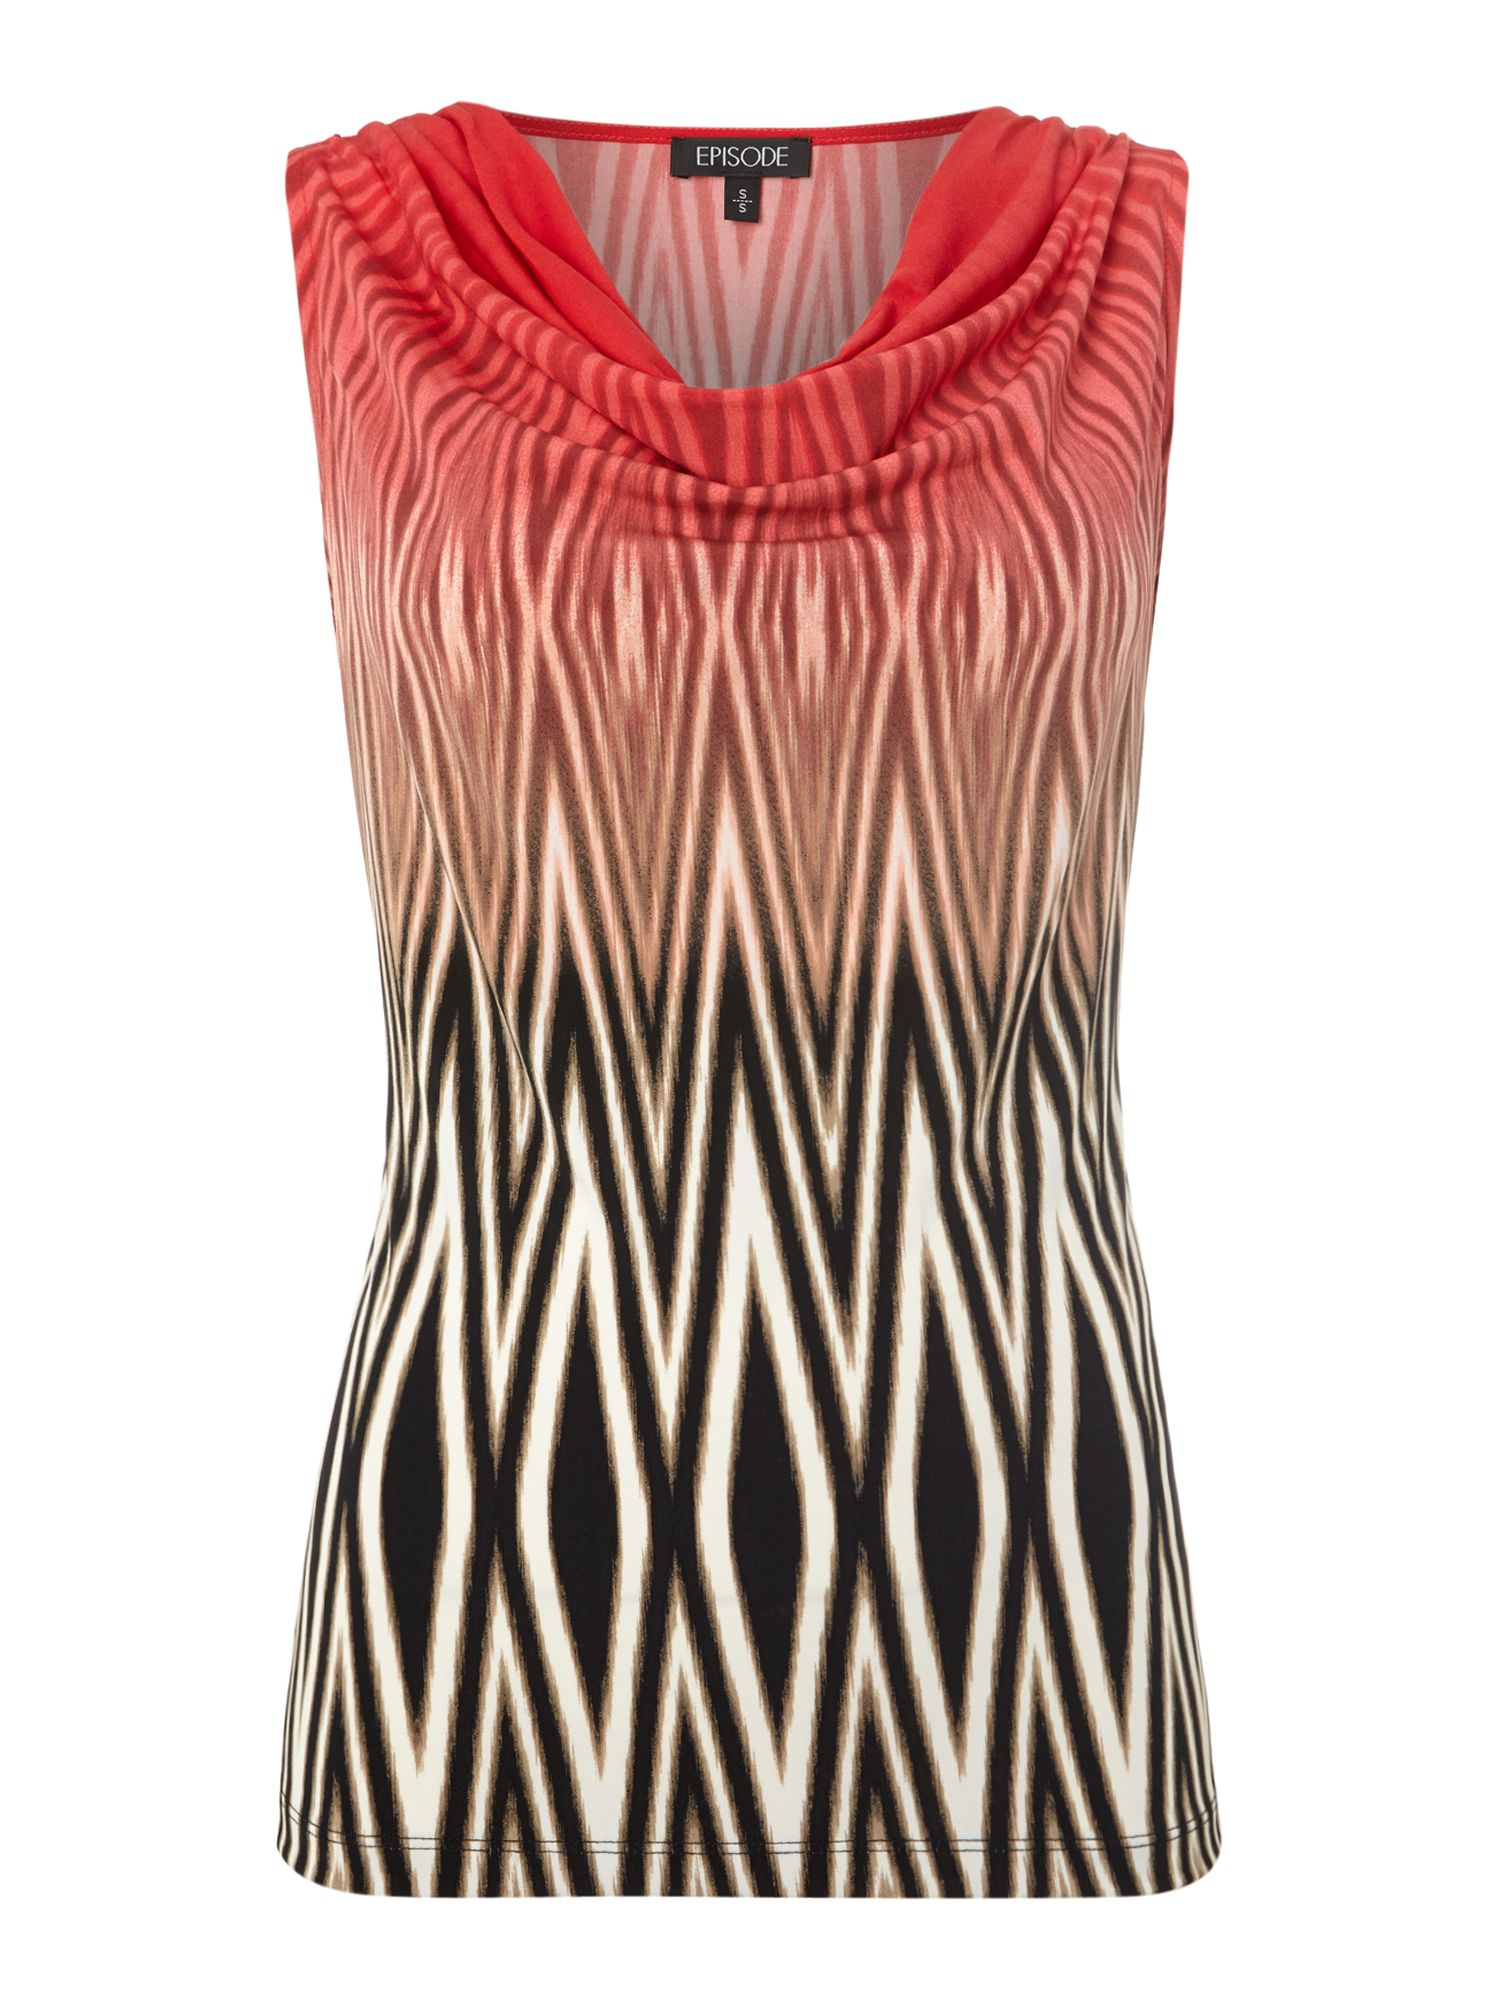 Cowl Neck Sunset Zebra Printed Top